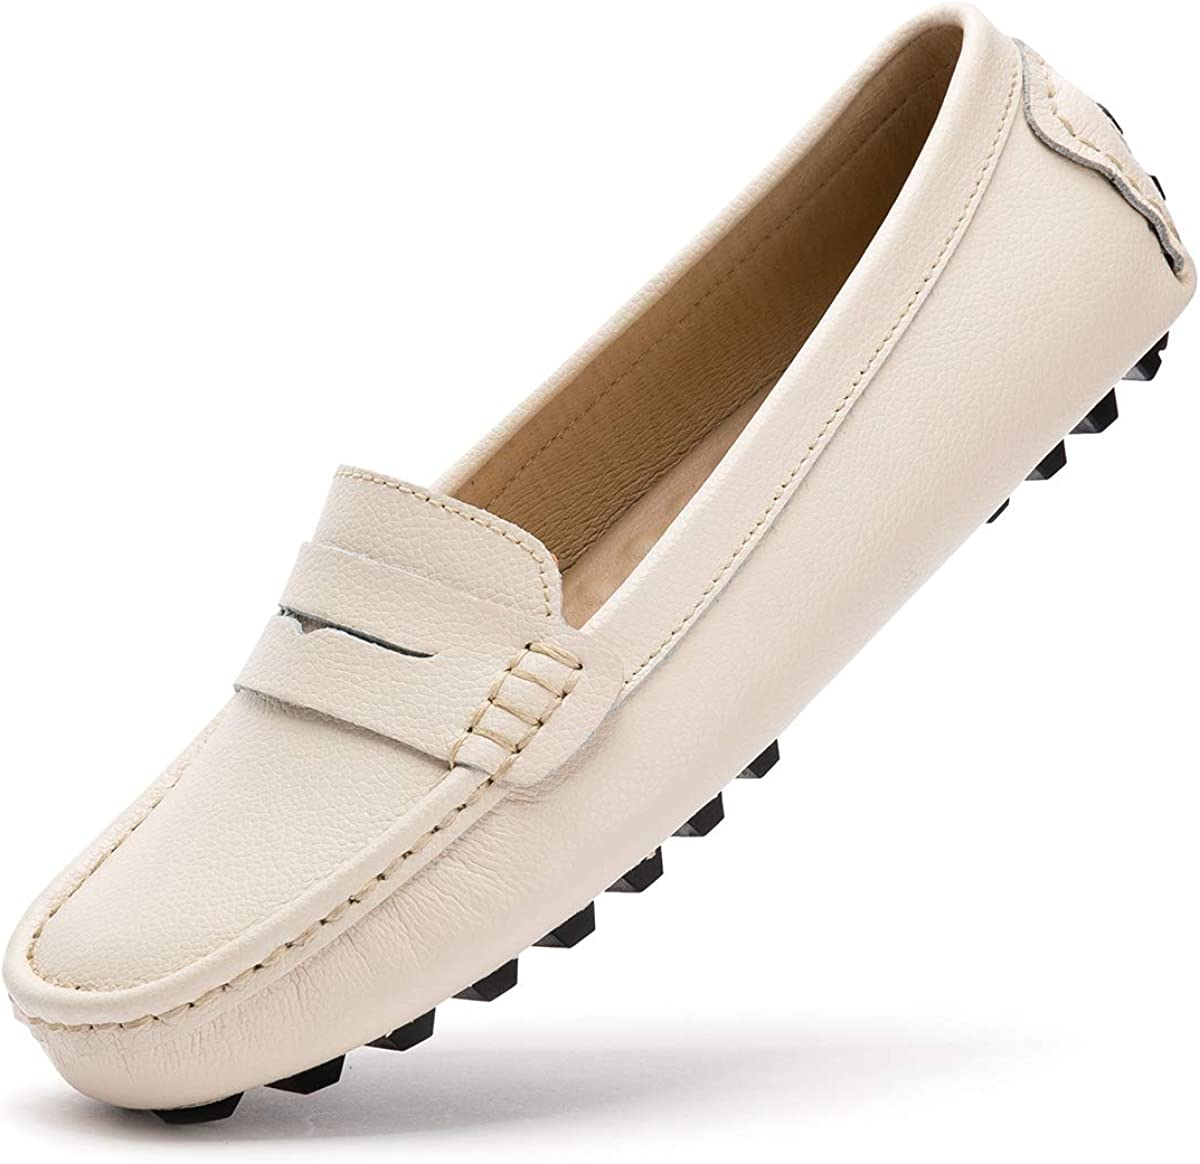 Amazon.com   Artisure Women's Classic Genuine Leather Penny Loafers Driving  Moccasins Casual Slip On Boat Shoes Fashion Comfort Flats   Loafers & Slip- Ons